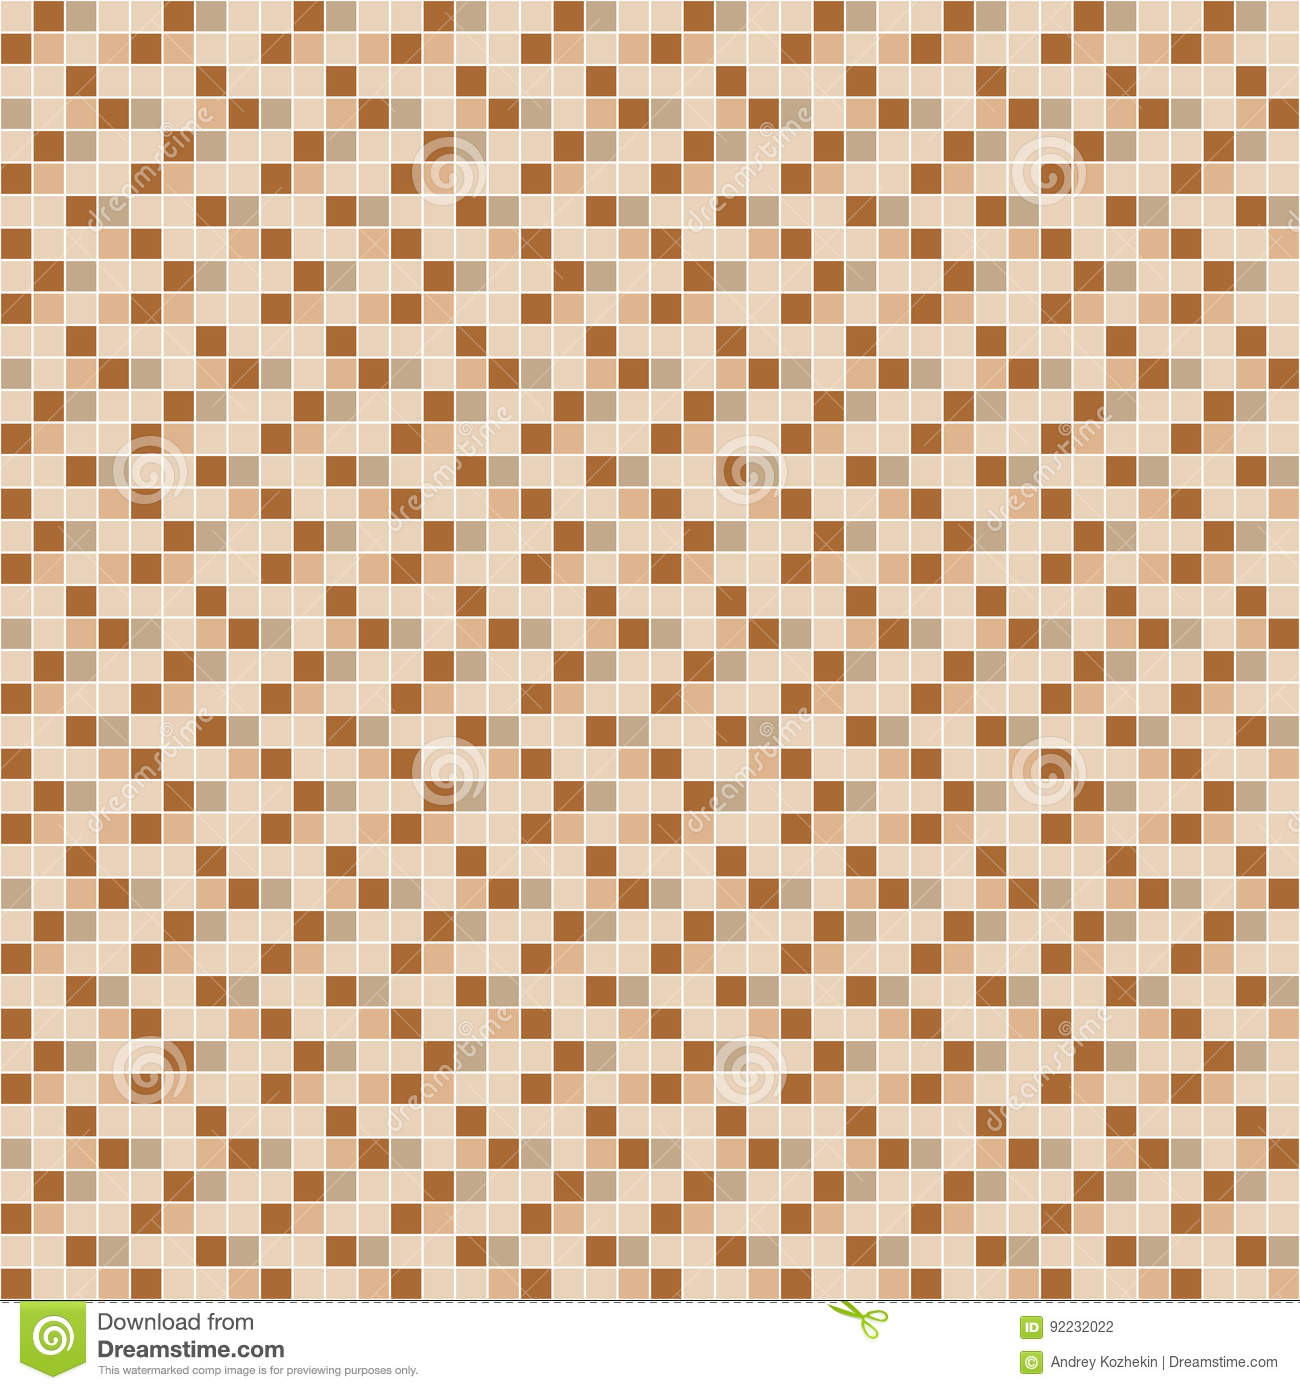 Beige and brown ceramic tile mosaic pattern stock vector beige and brown ceramic tile mosaic pattern dailygadgetfo Images